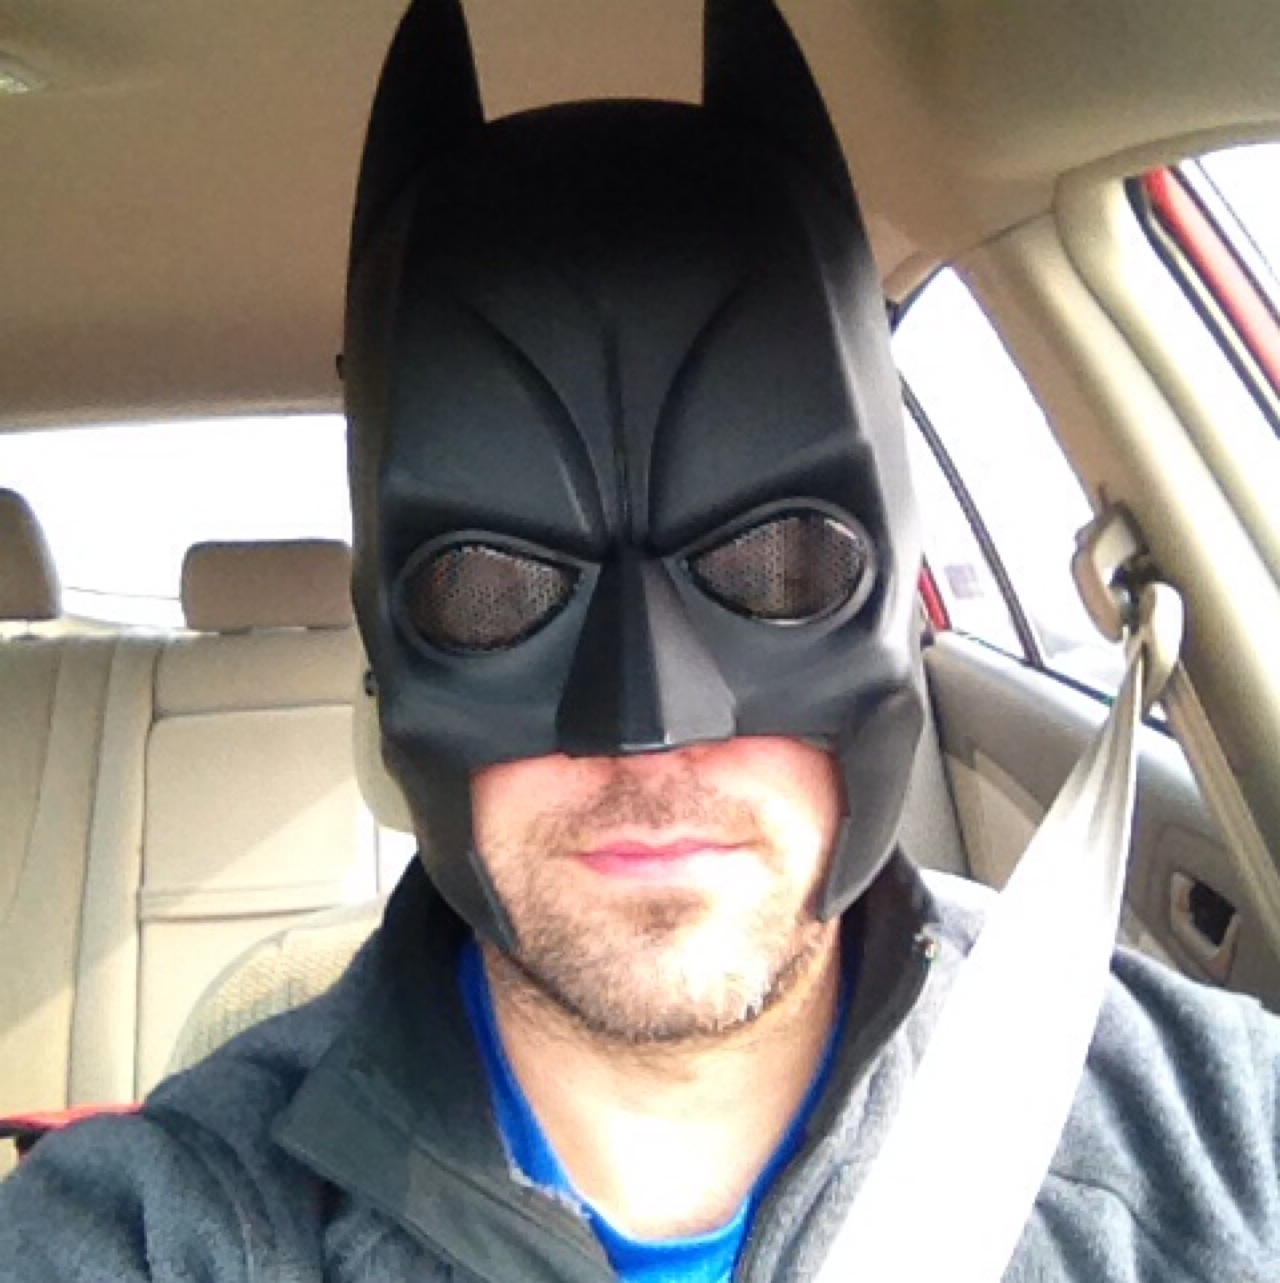 John Gunter with his new Batman mask fighting East Asian road rage